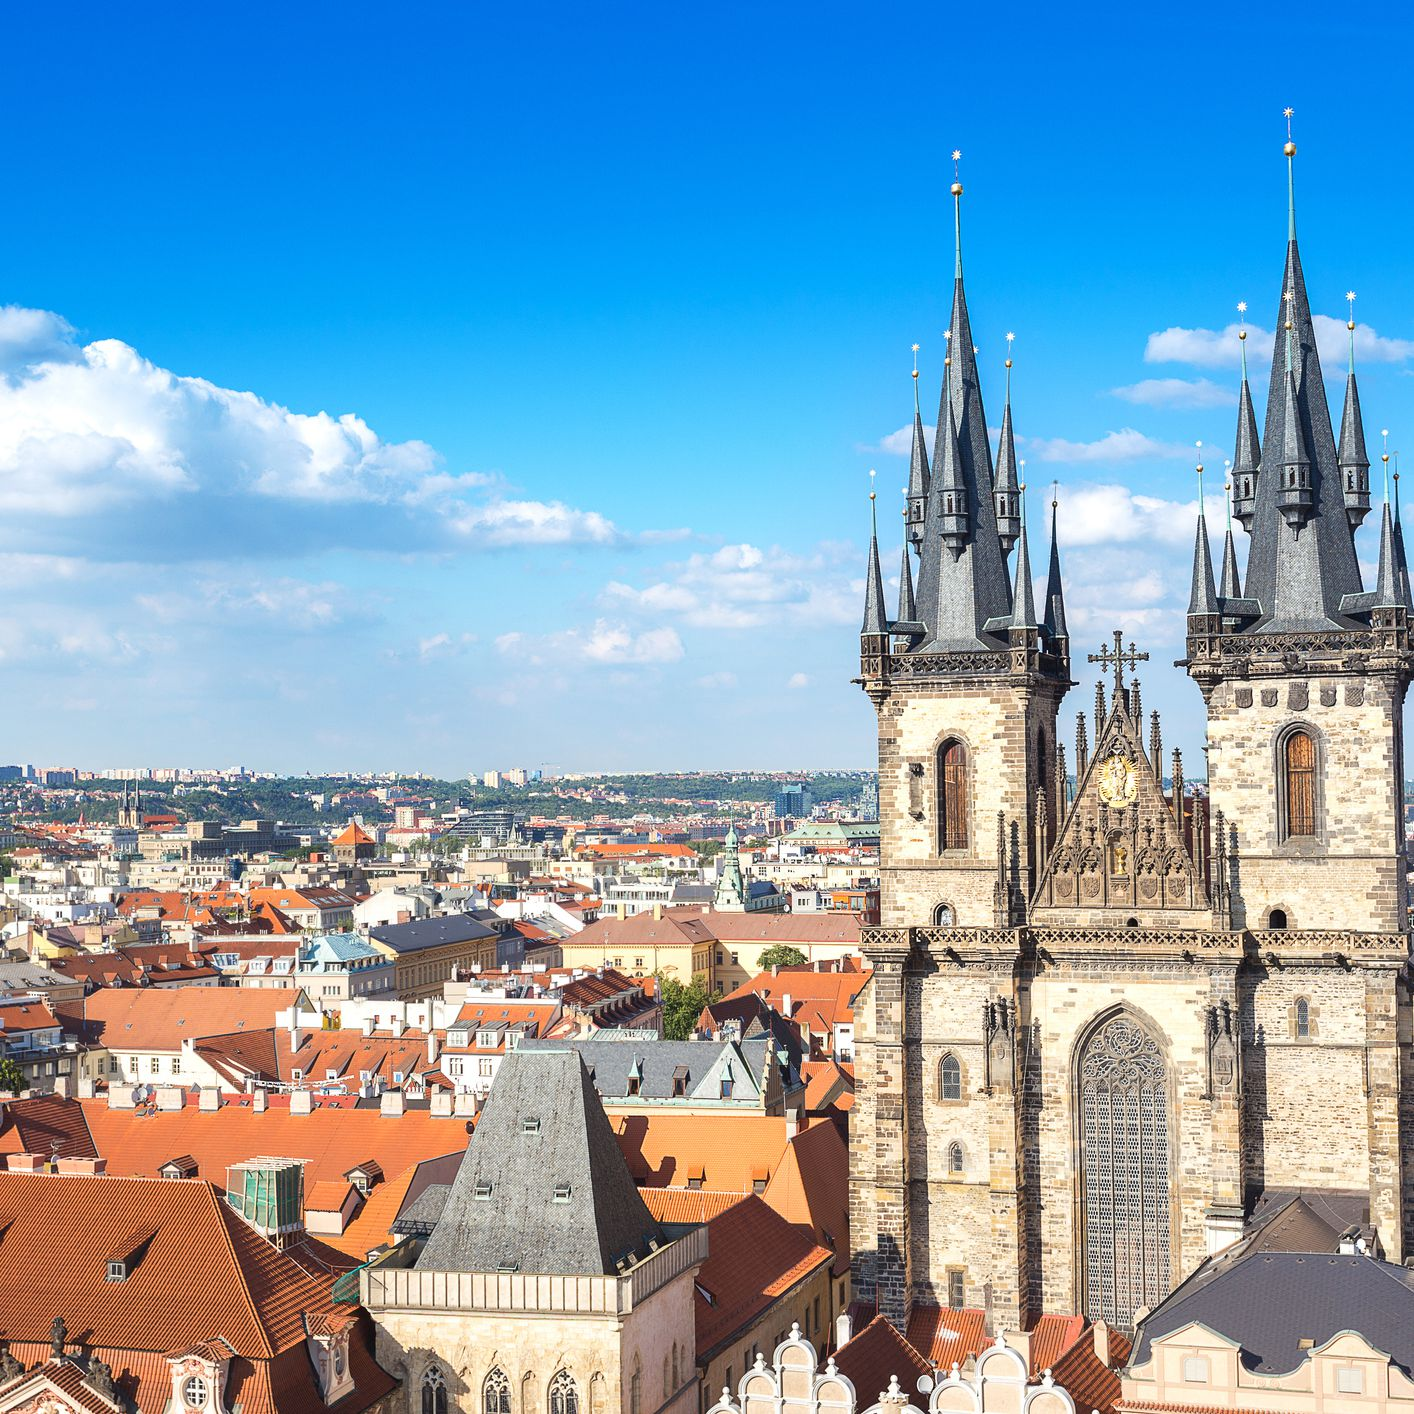 The Top 10 Places to Visit in the Czech Republic